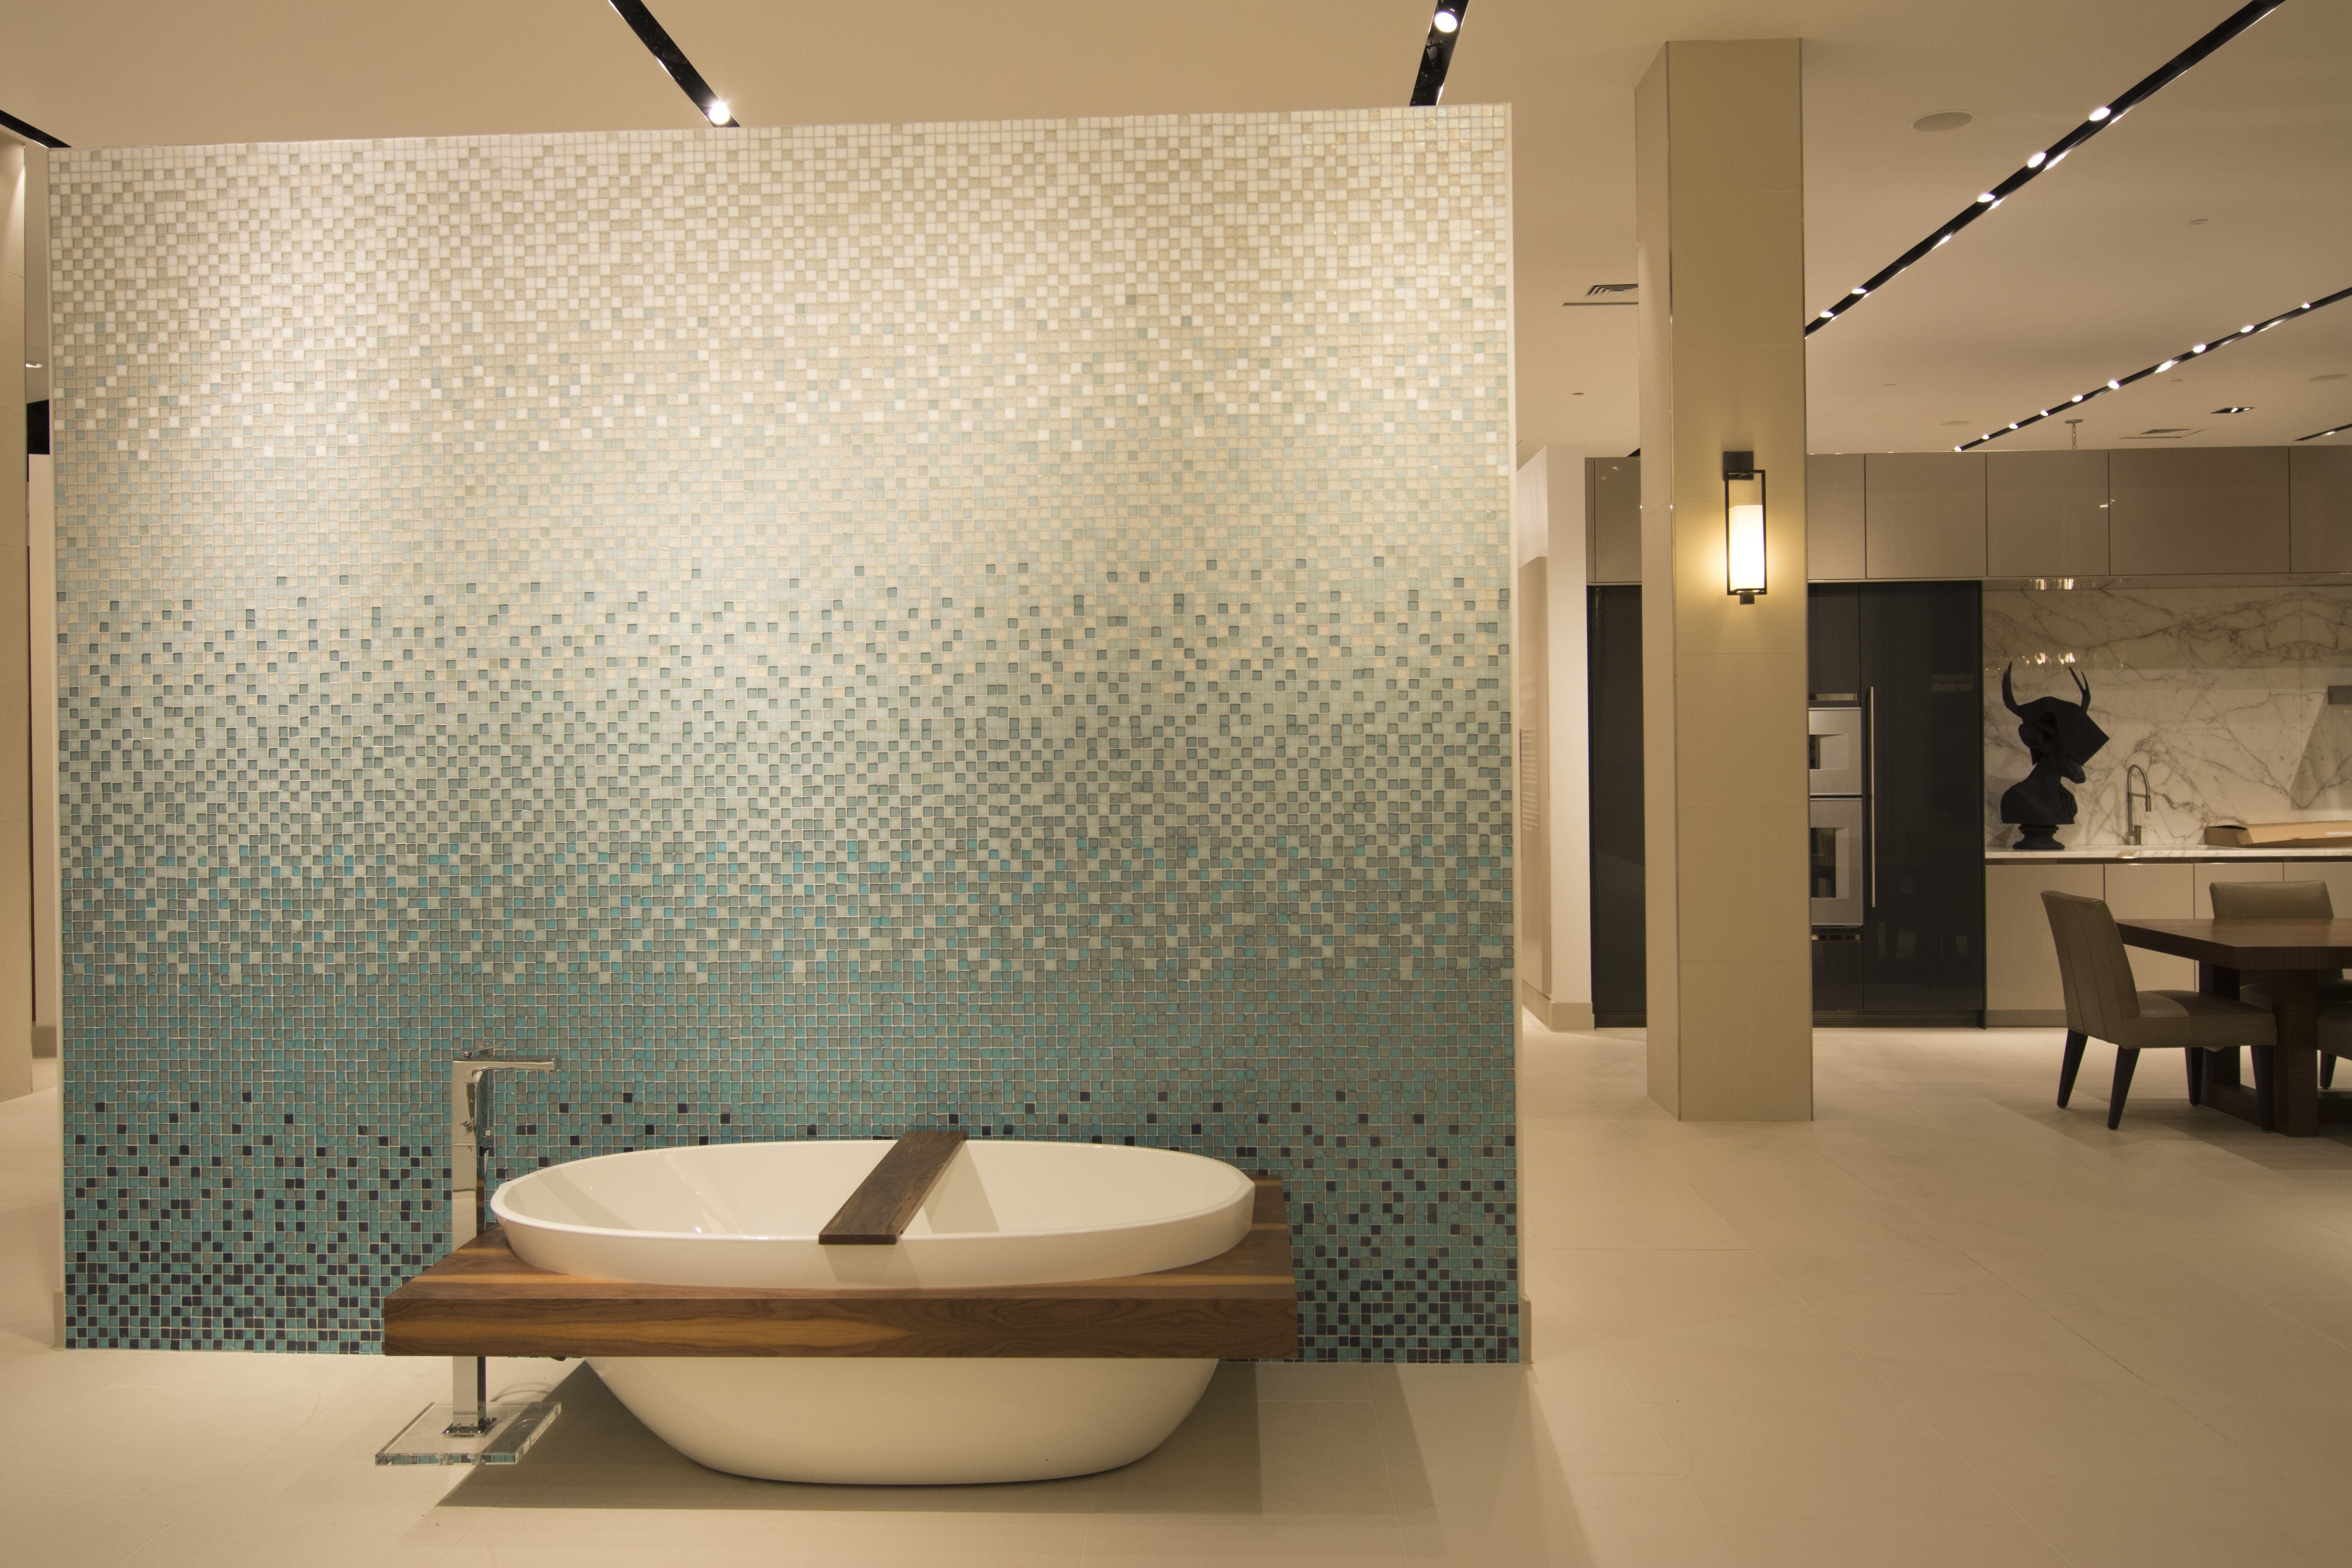 Bathroom display in pirch atlanta featuring a wetstyle for Pirch atlanta